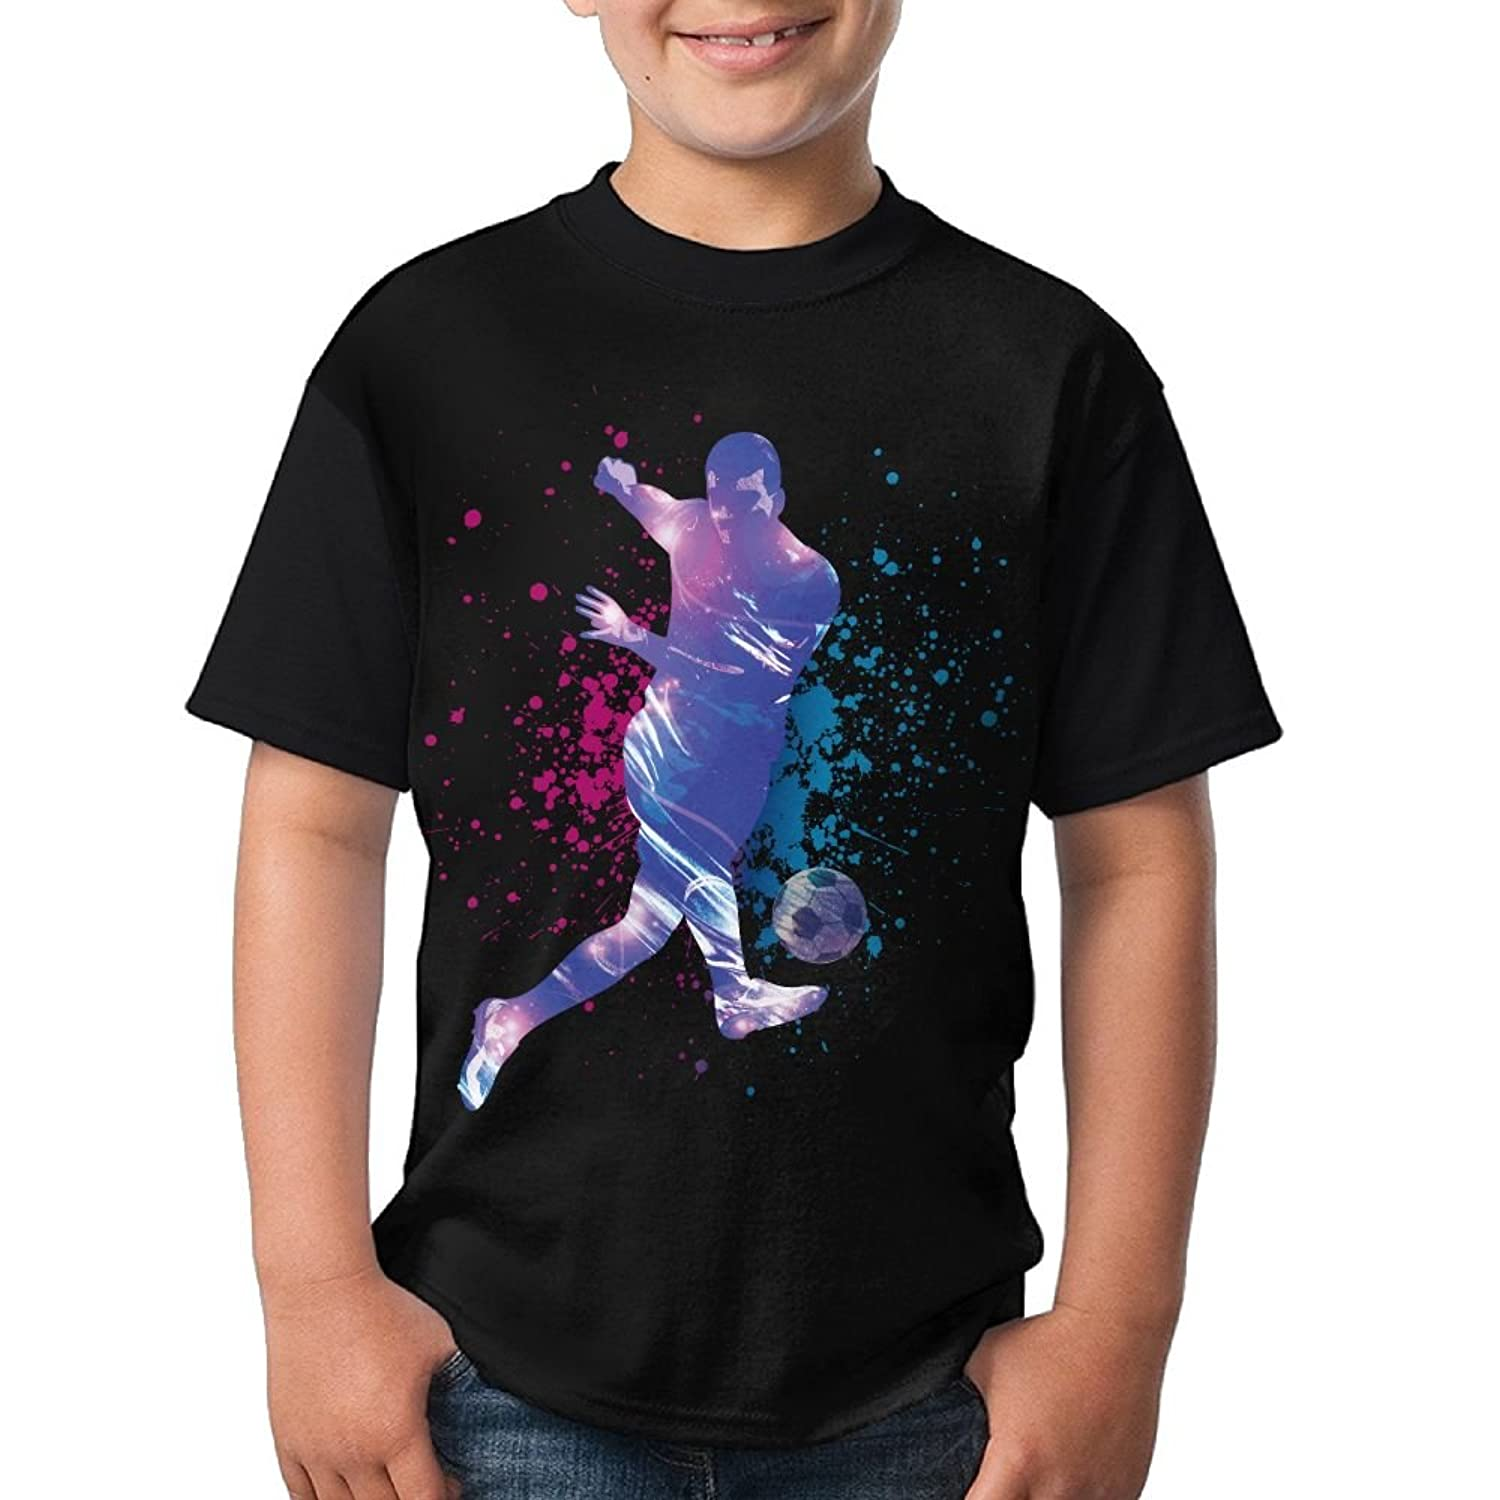 14cfc9a44 CHENLY Unisex T-Shirt Breathable Watercolor Football Man O-Neck Tee For  Child -